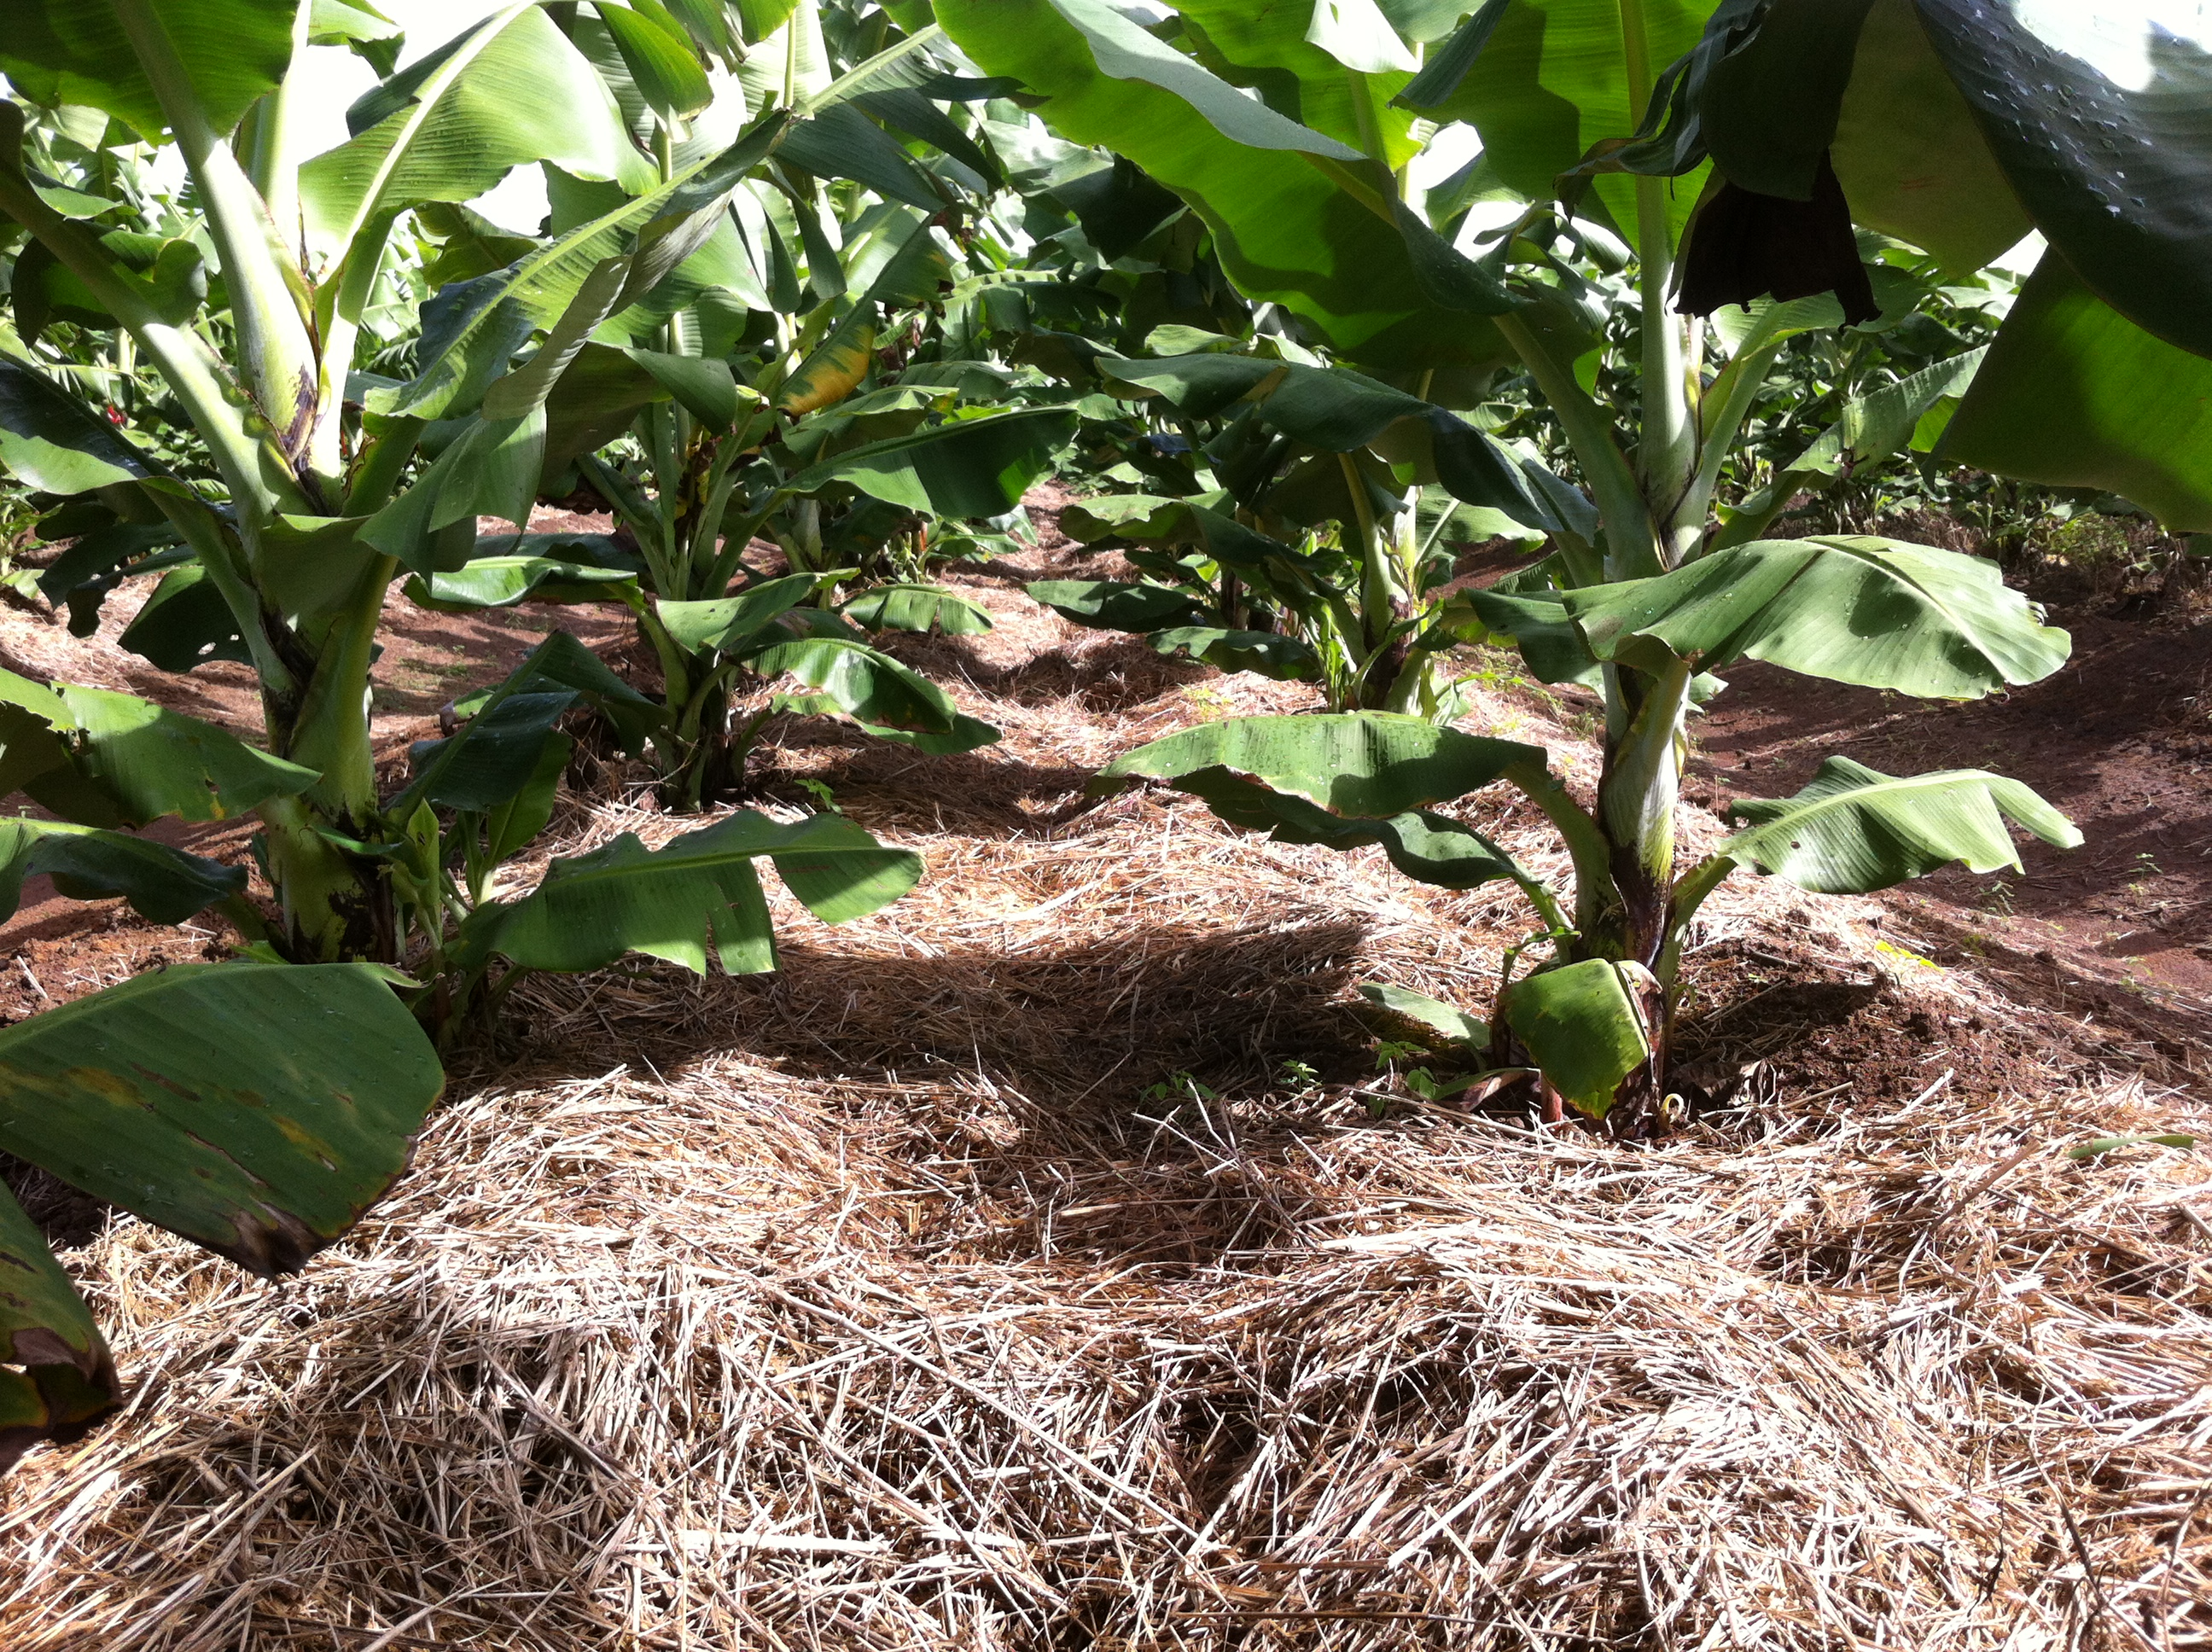 Grass hay mulch spread around banana plants to suppress weeds, reduce the need for herbicides and retain soil moisture.